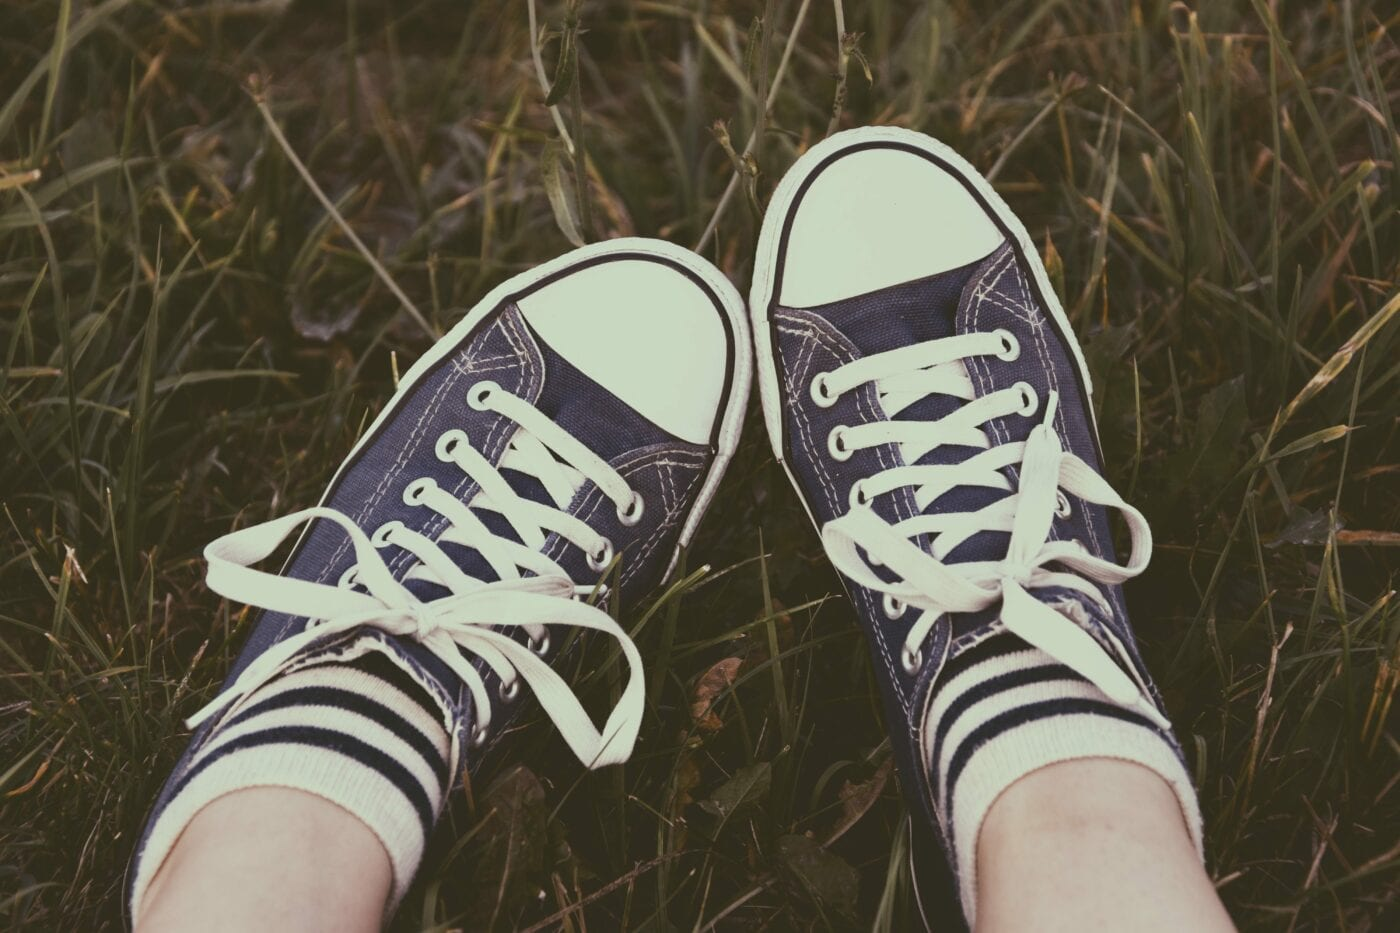 From an Addict's Perspective: Addicts Keep Their Feet on the Ground By Using Old Slogan - Edgewood Health Network